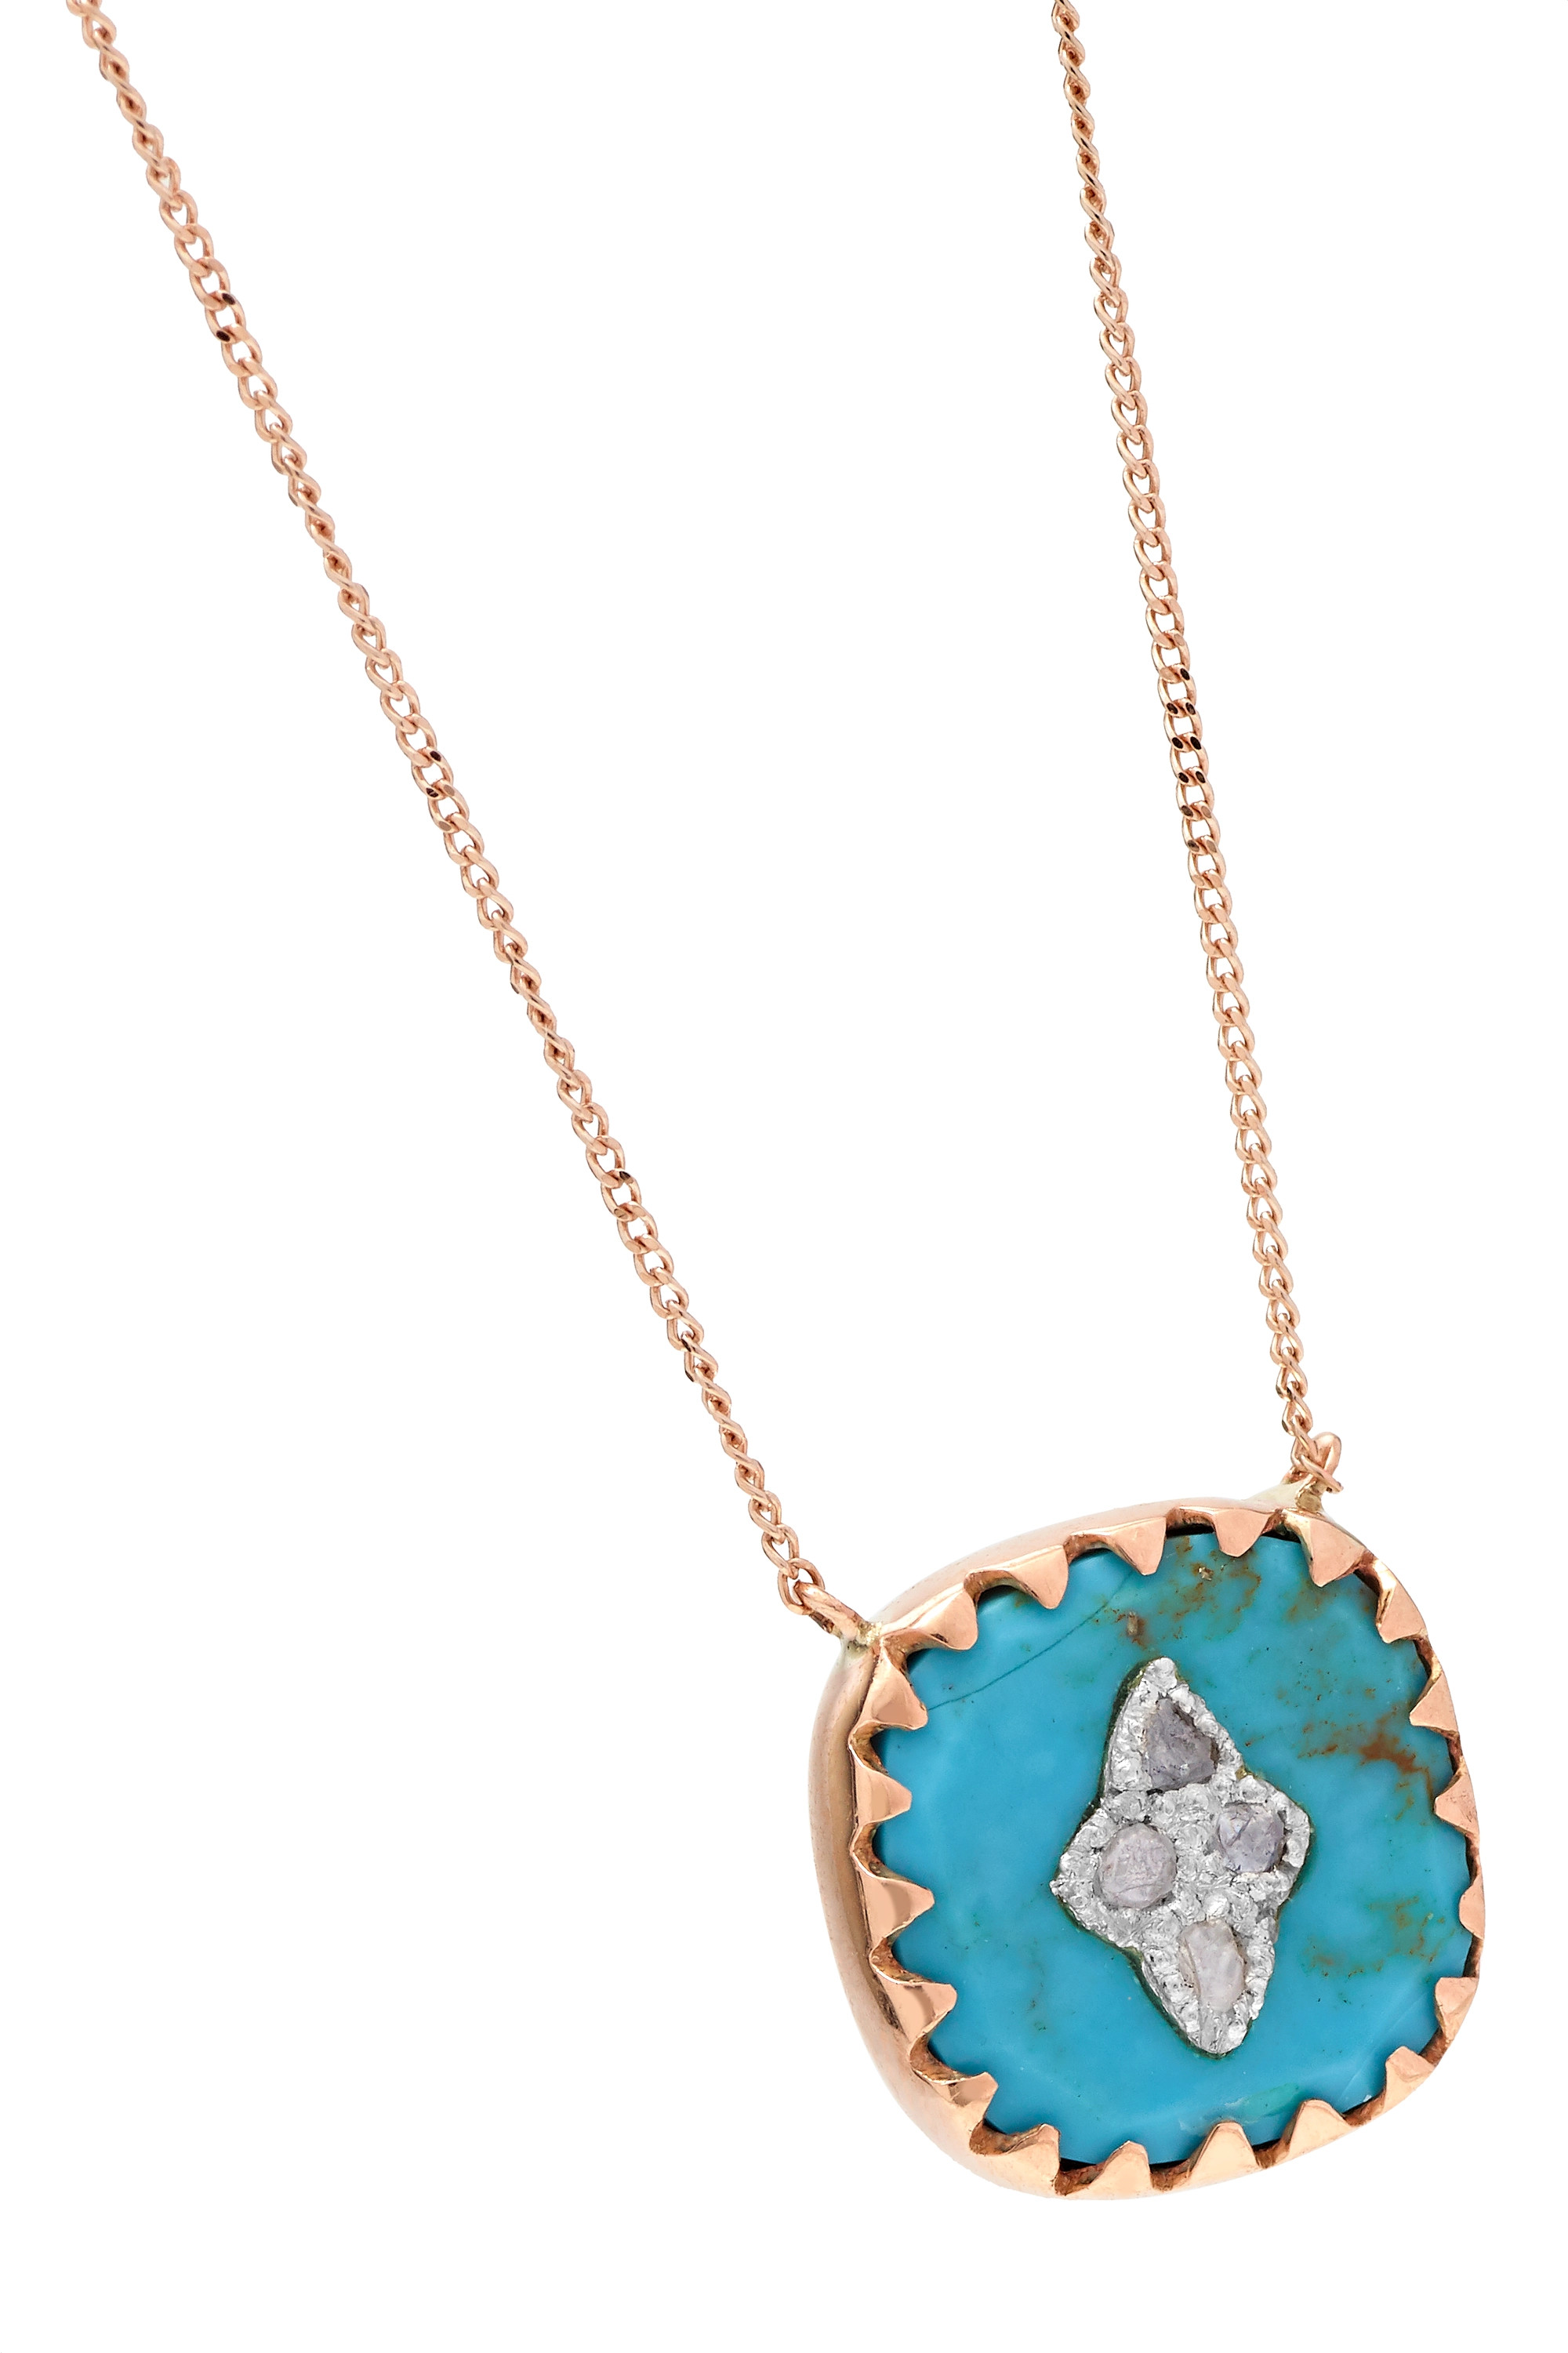 Pascale Monvoisin Pierrot N°2 9-karat rose gold, turquoise and diamond necklace